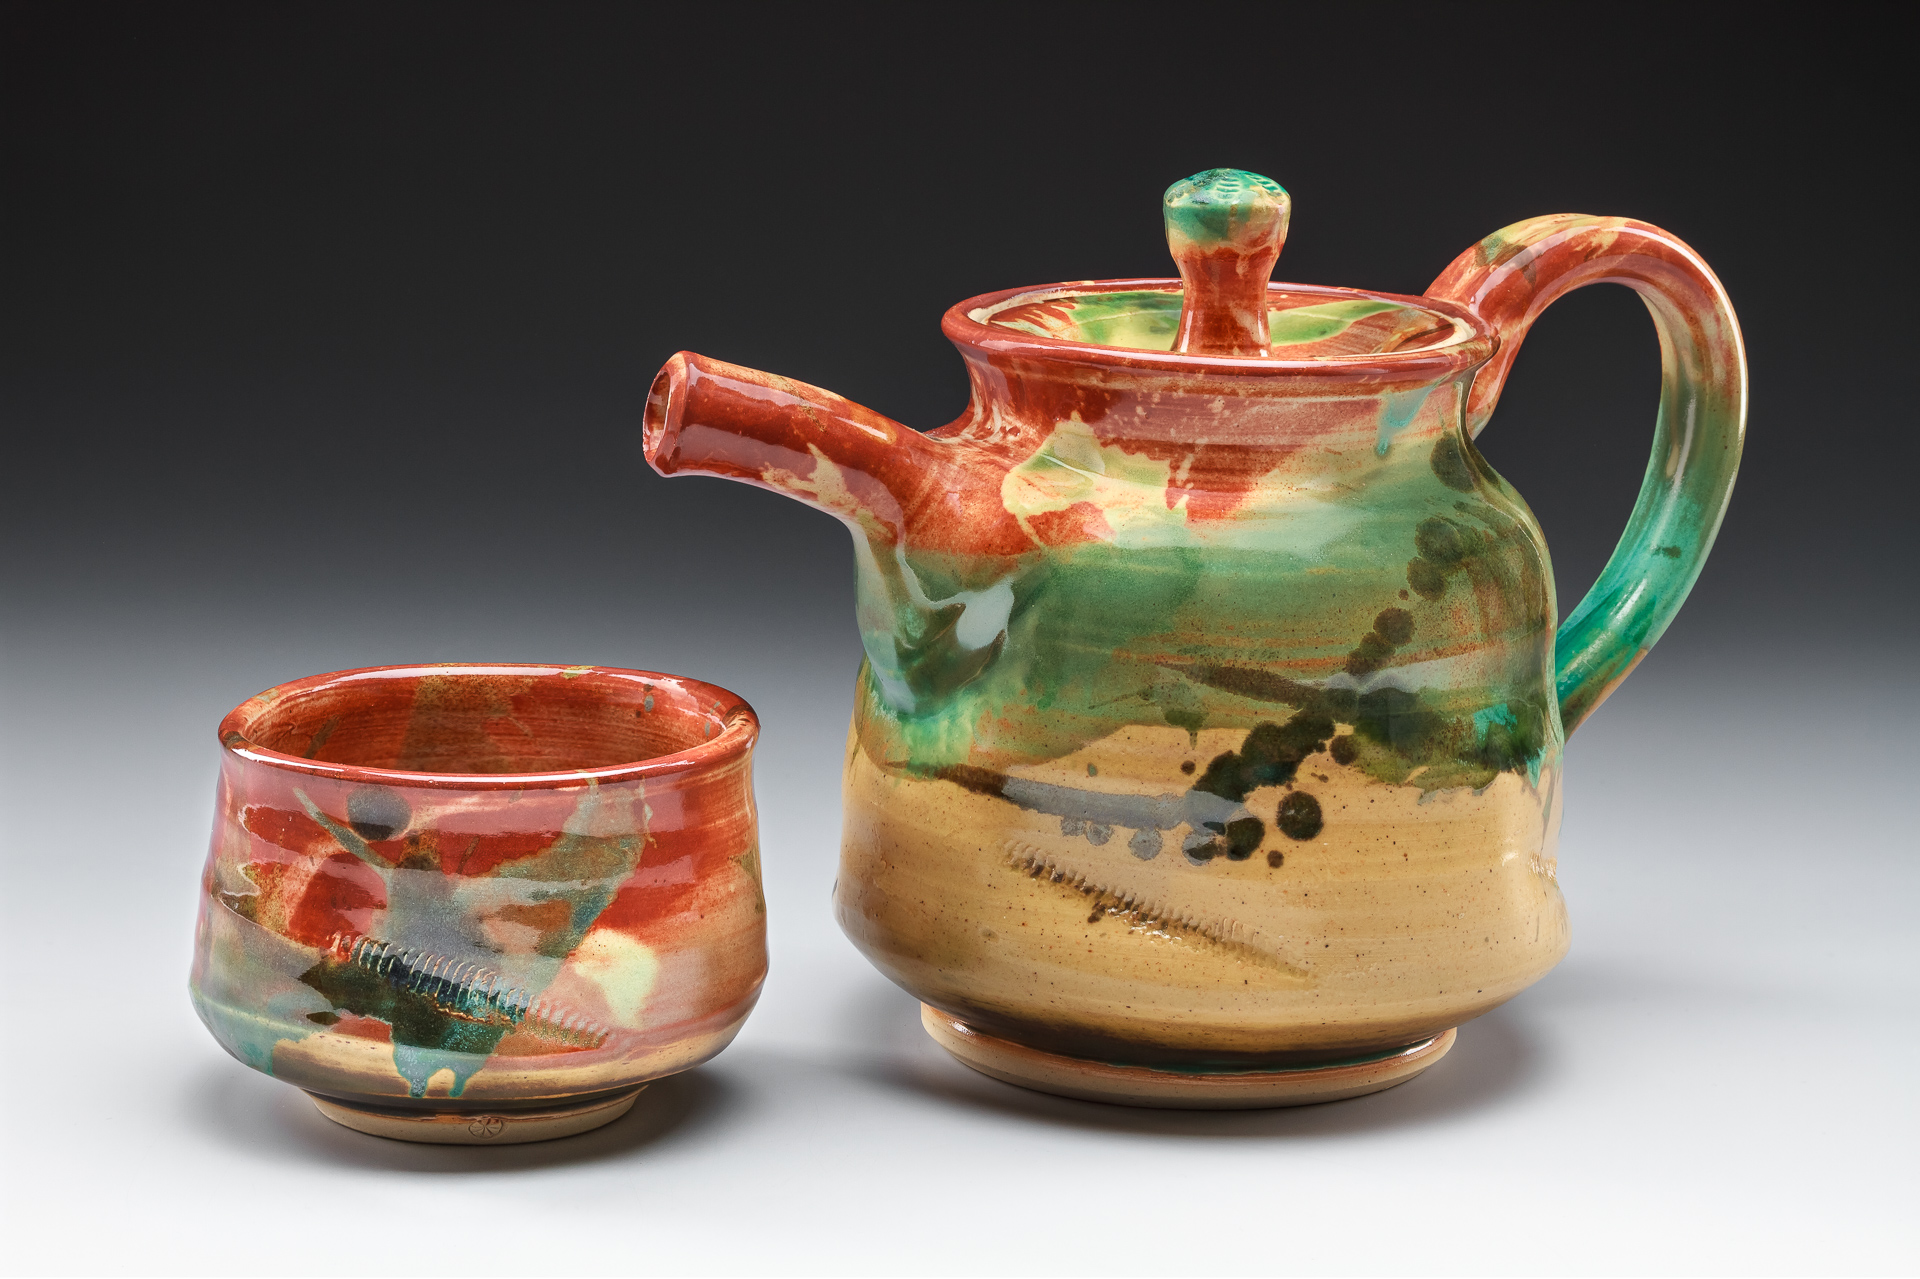 """Mountain Tea Set"", by Lisa Kurtz, Stoneware, thrown and altered, Teapot: 7x9.5x5.5in, Teabowl: 2.75x4x4in, SOLD"